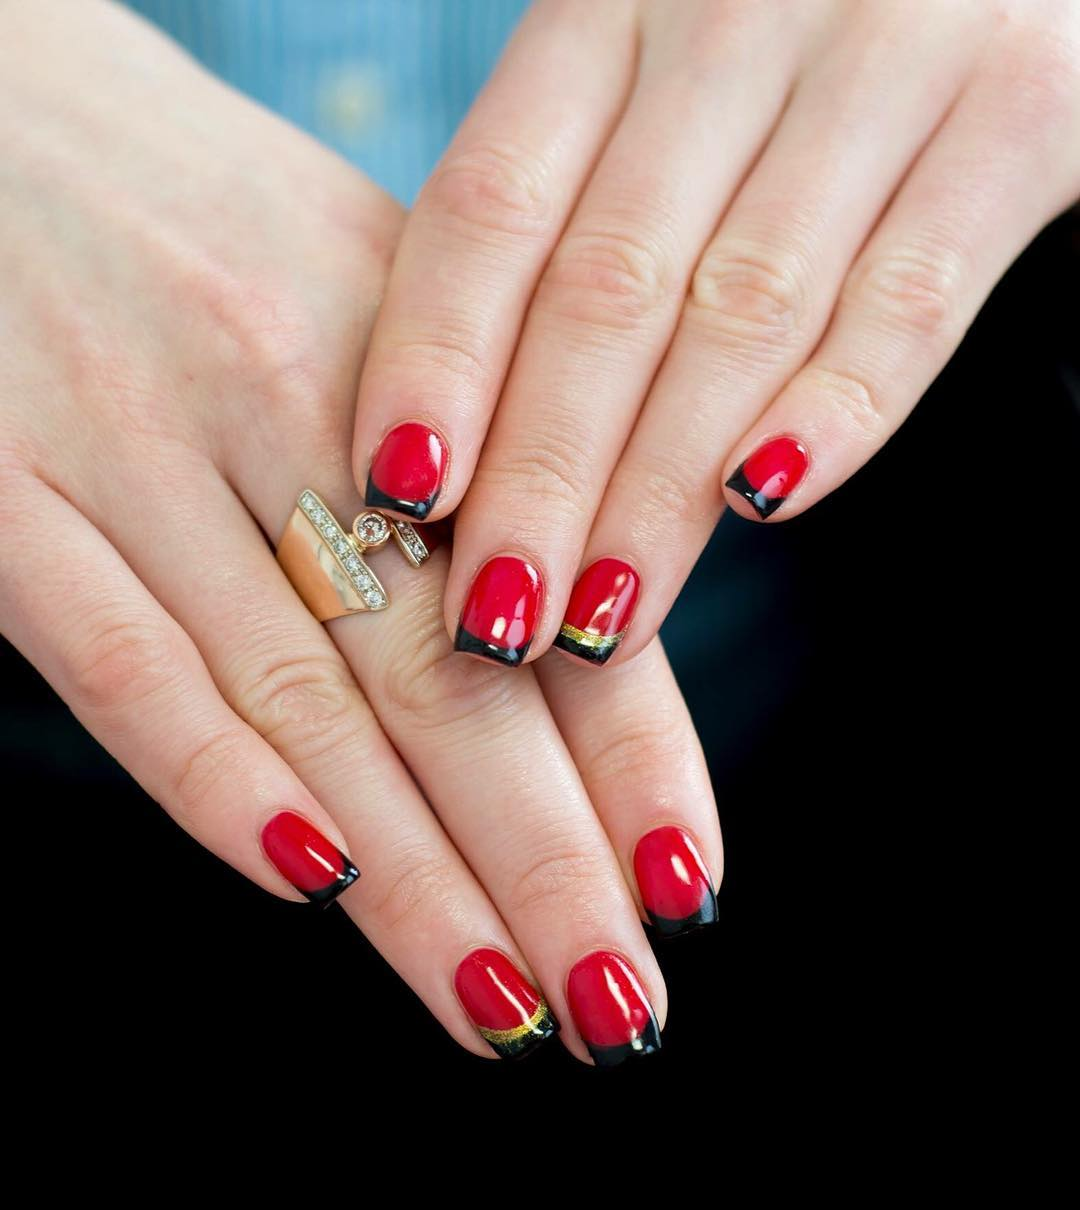 Nails Design Ideas pink nail design with glitter Red And Black Nail Design Ideas